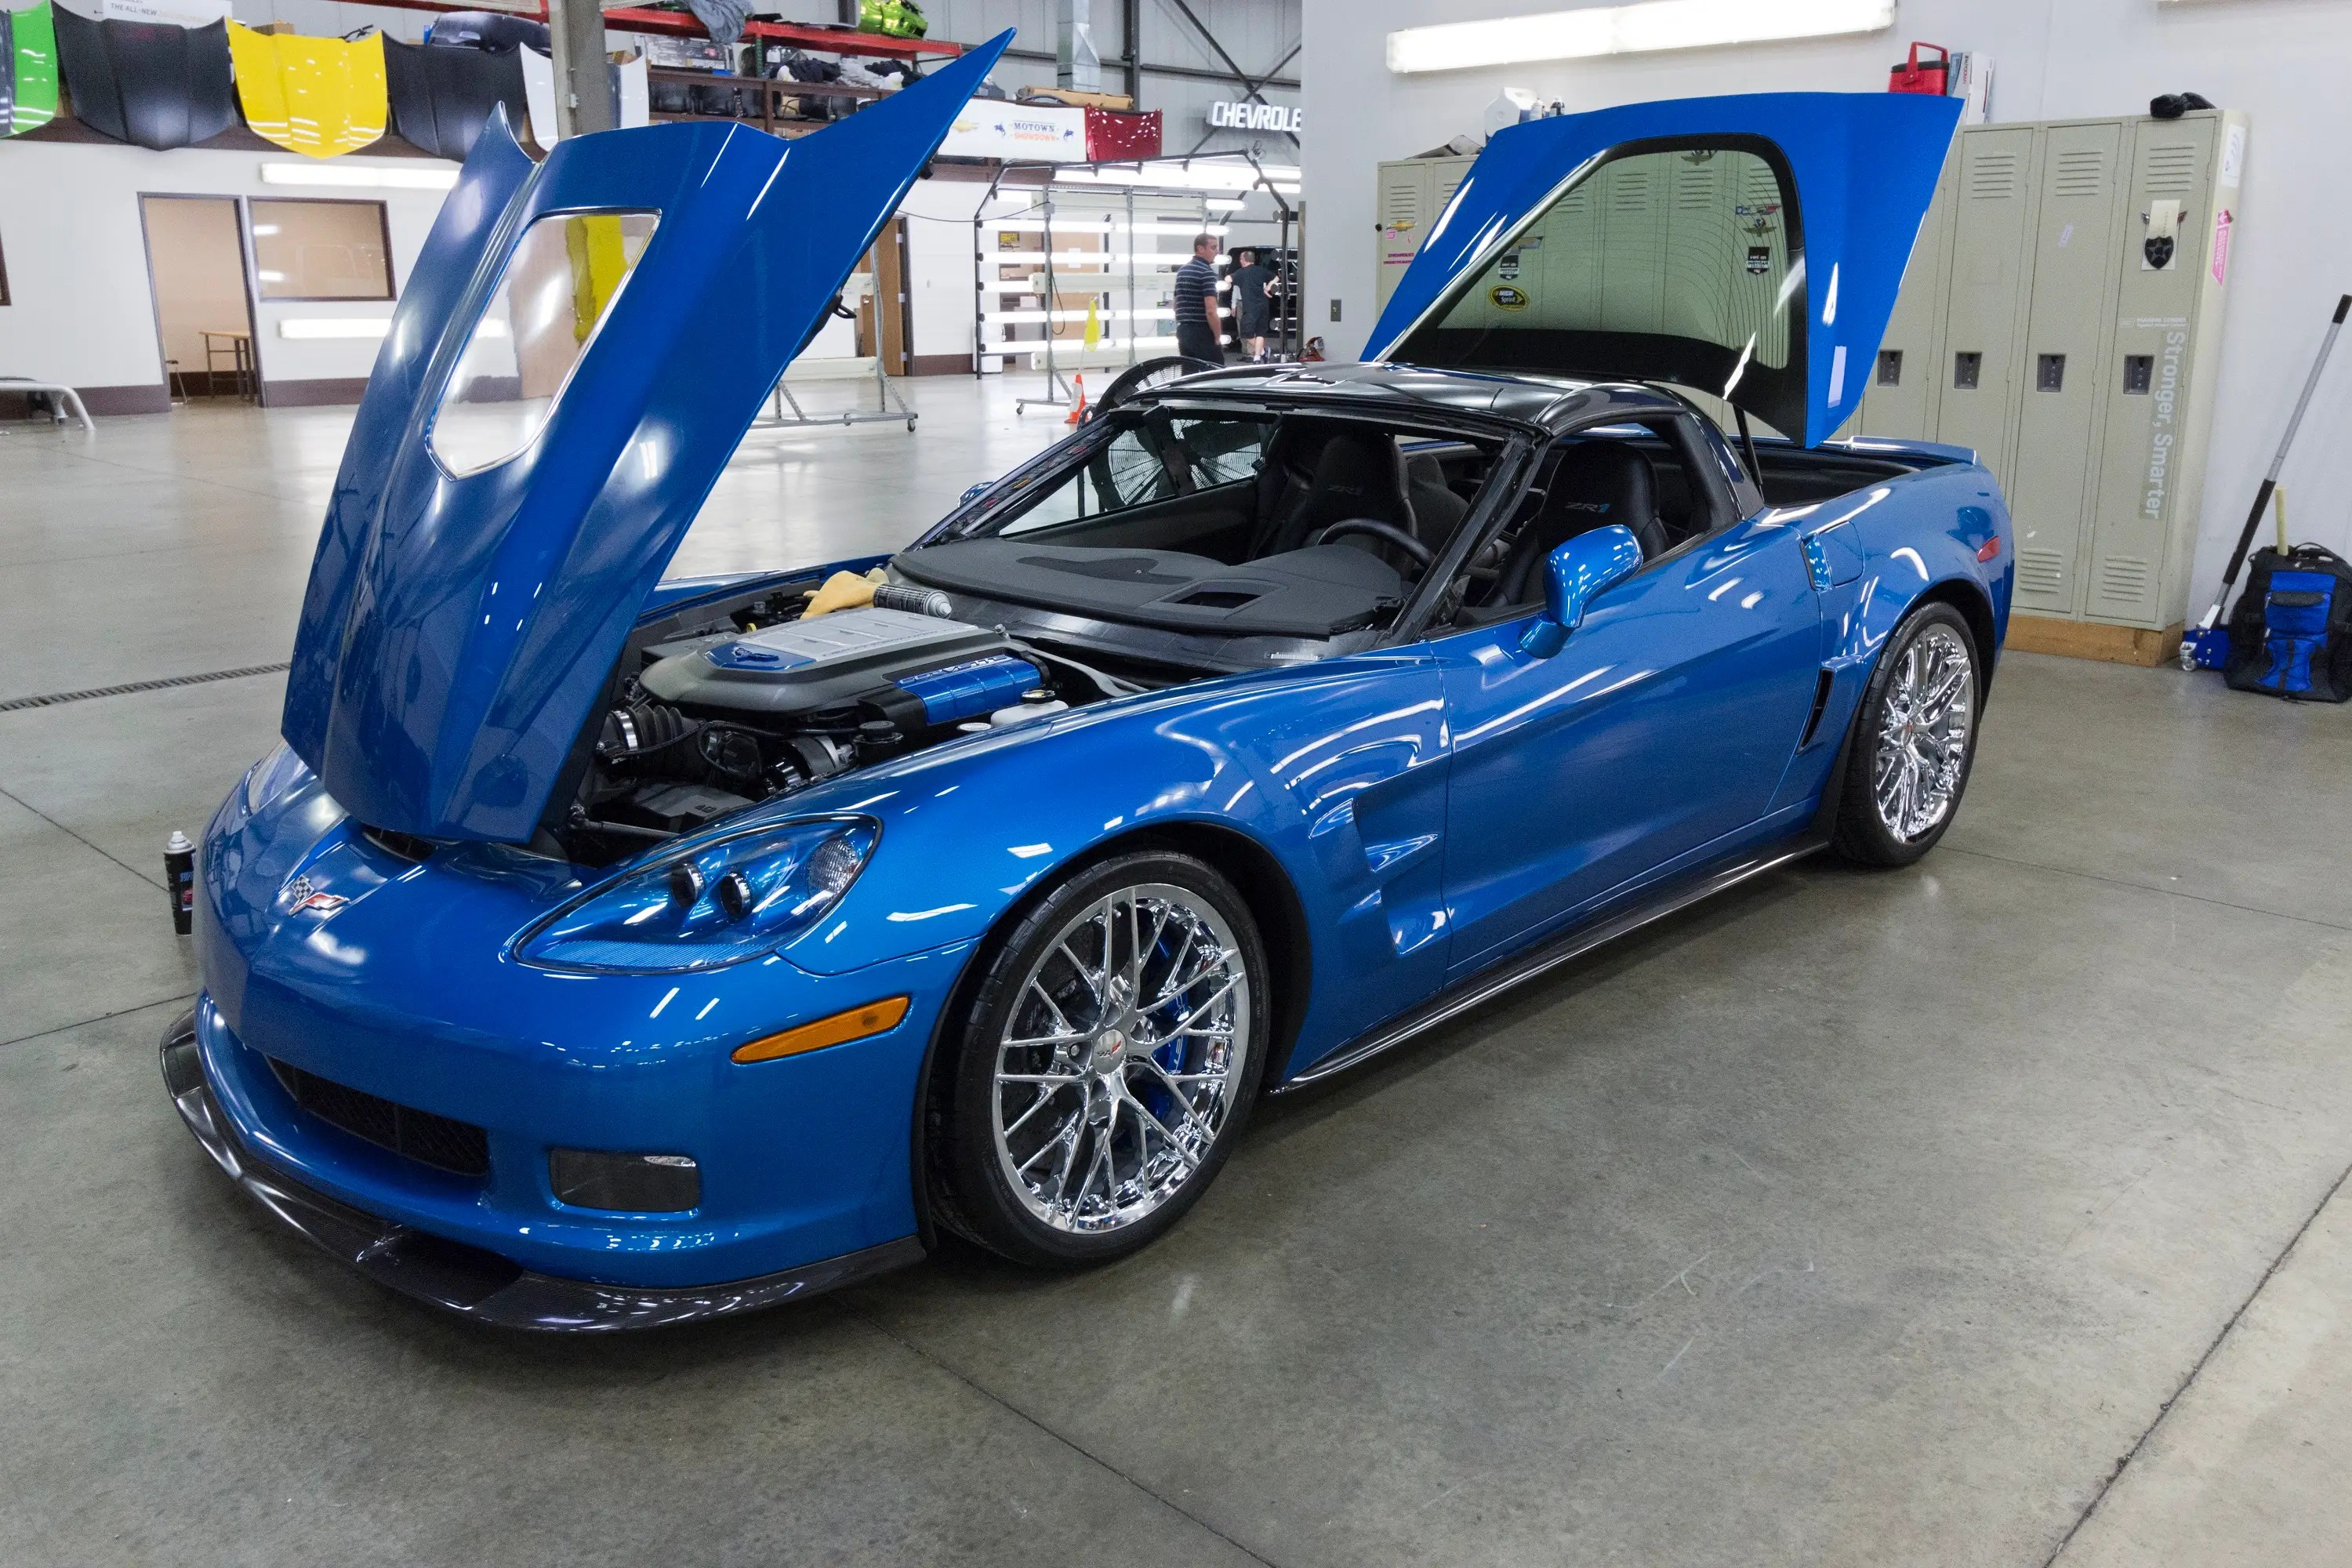 This rare 2009 Corvette ZR-1 was recovered from the sinkhole at the Corvette Museum and restored to its previous glory.